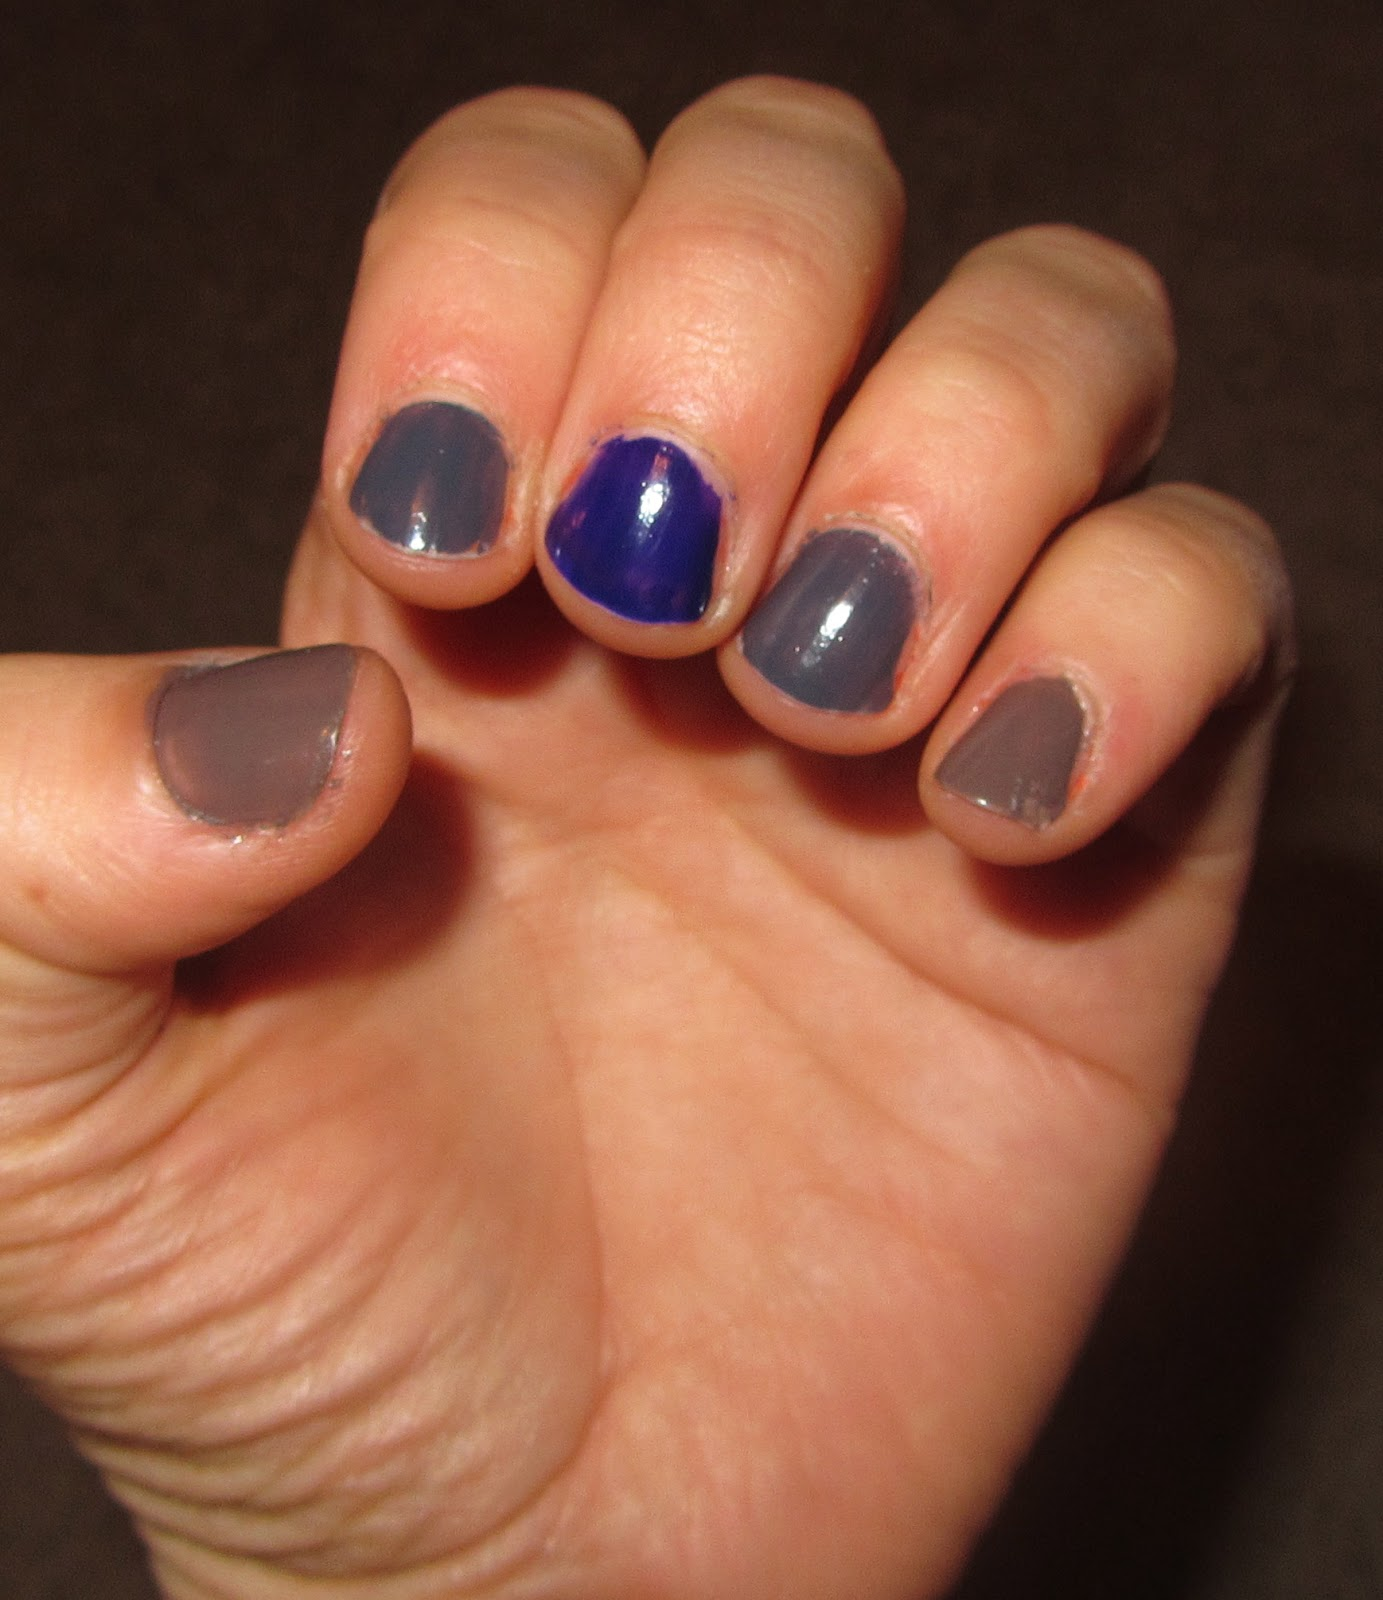 nail art for short nails: idea #3 - project swatch